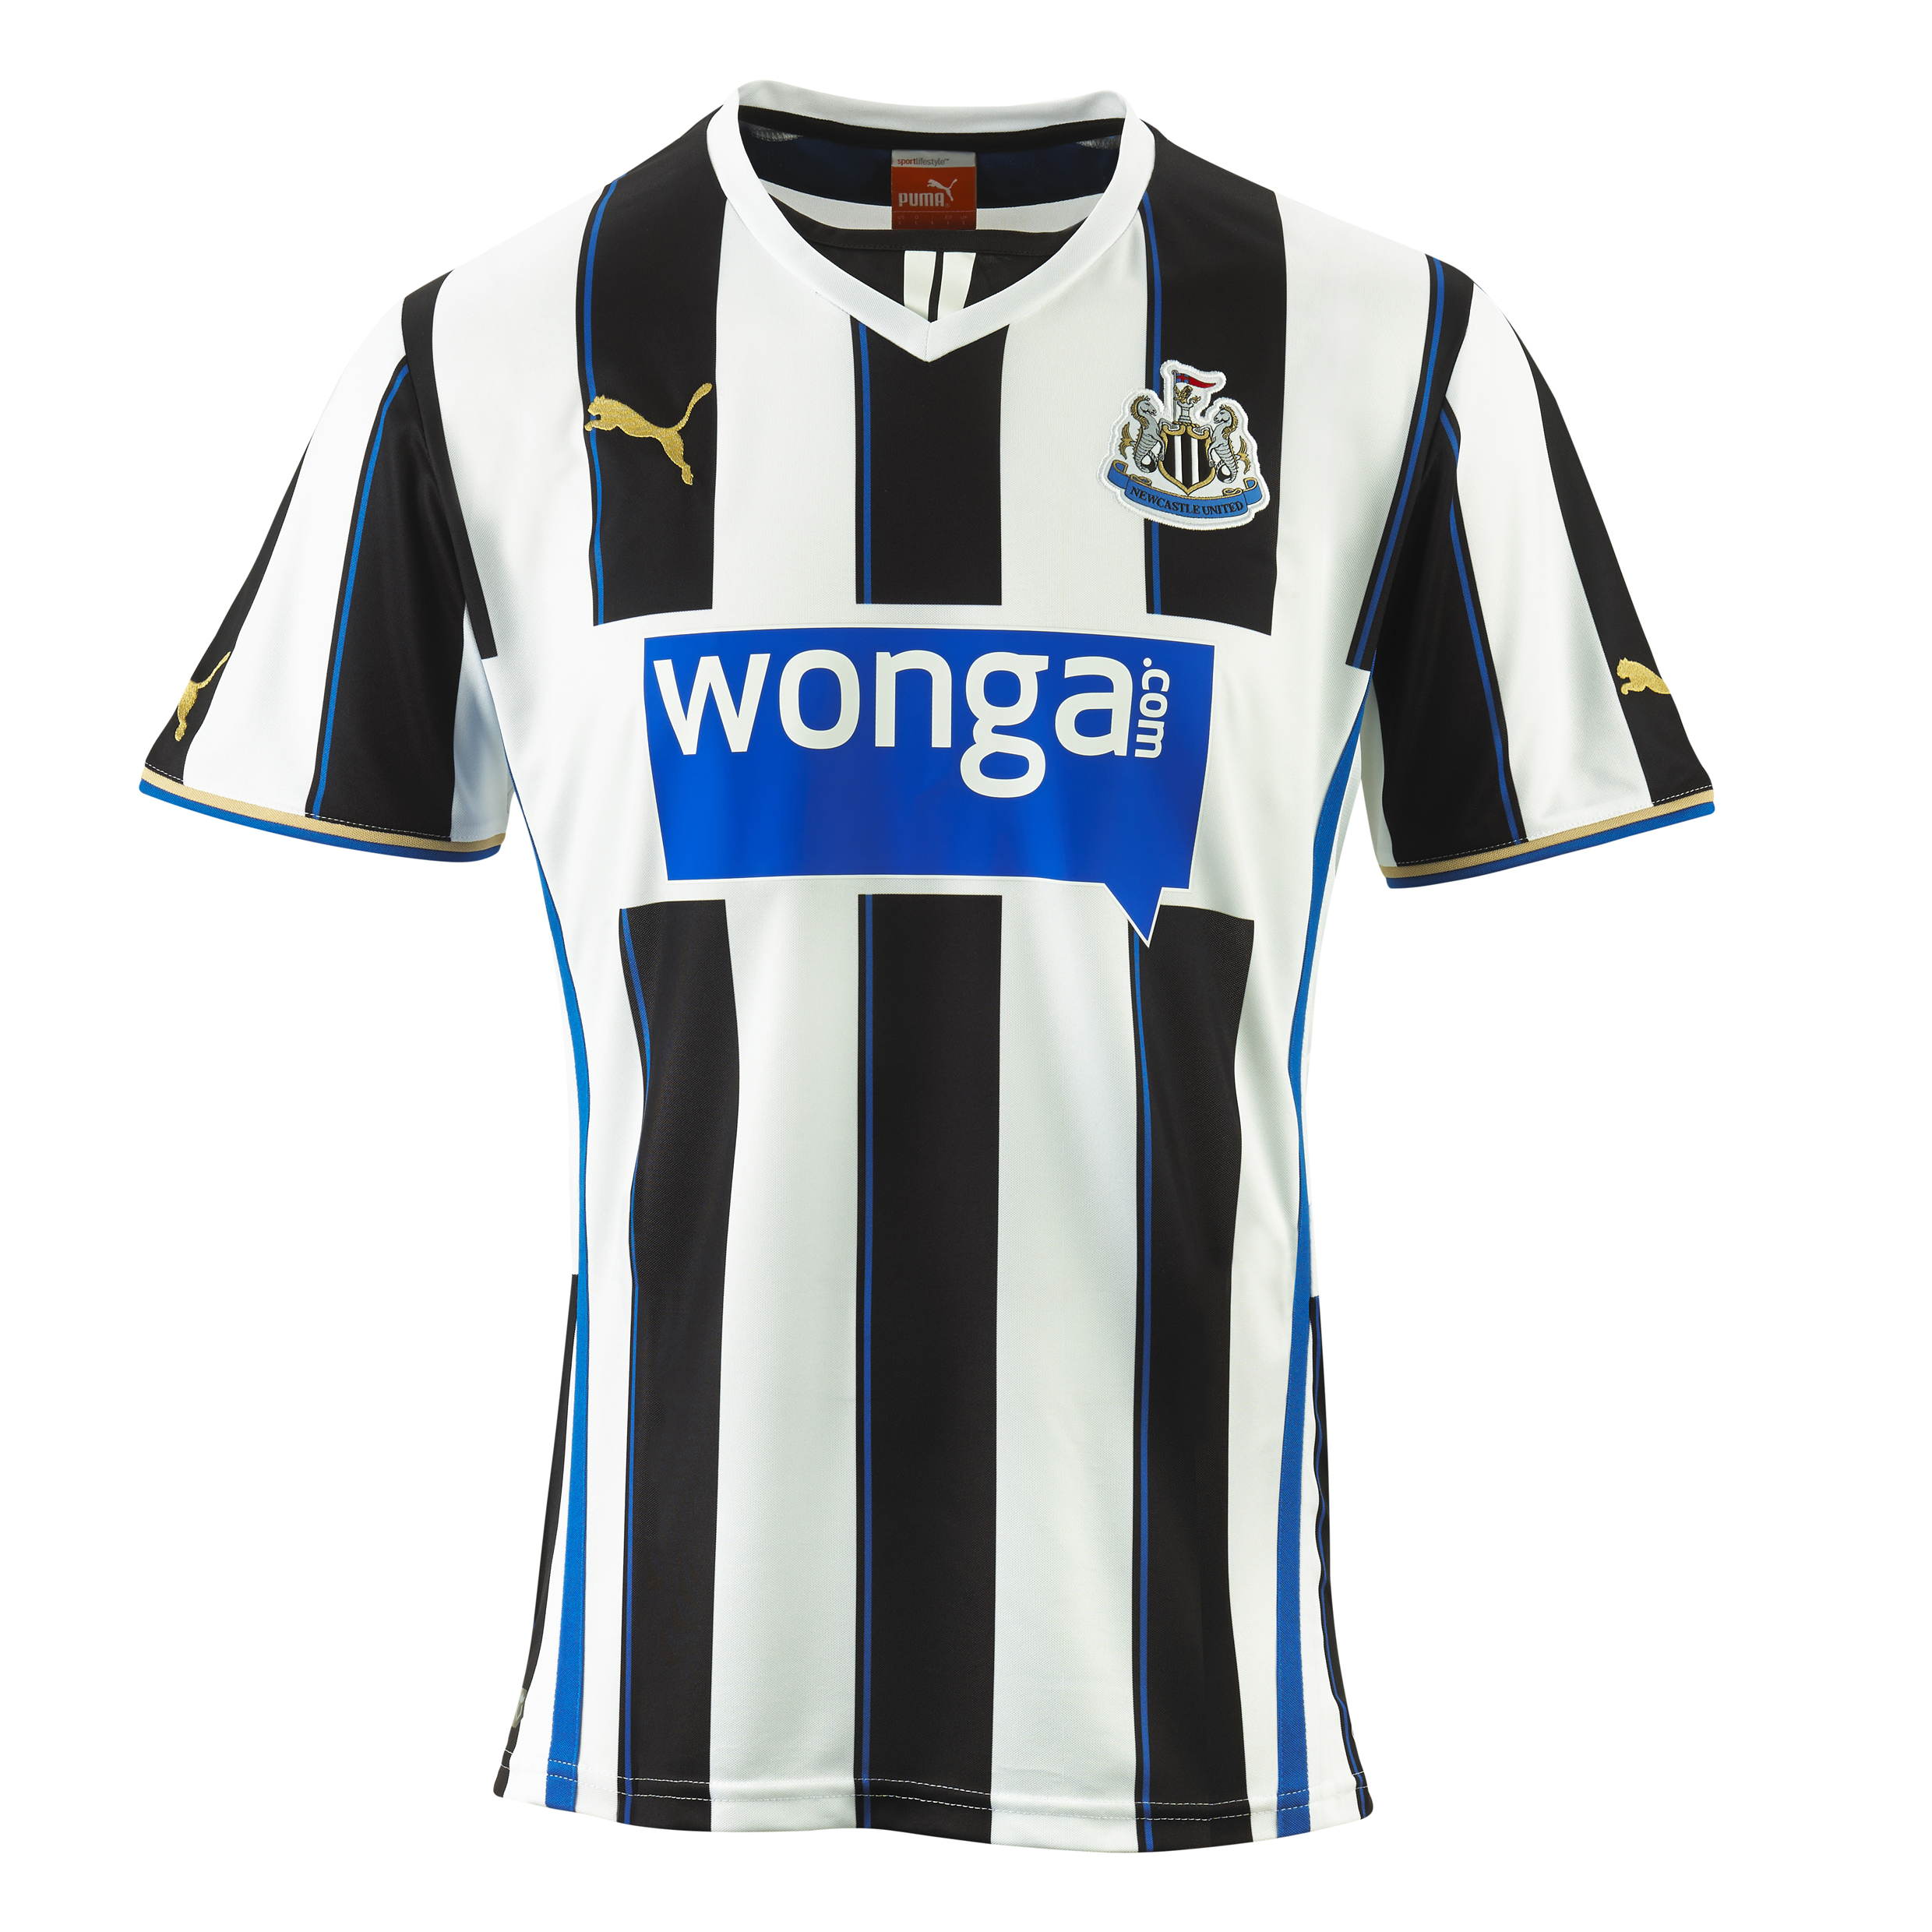 Newcastle United Home Shirt 2013/14 - Outsize